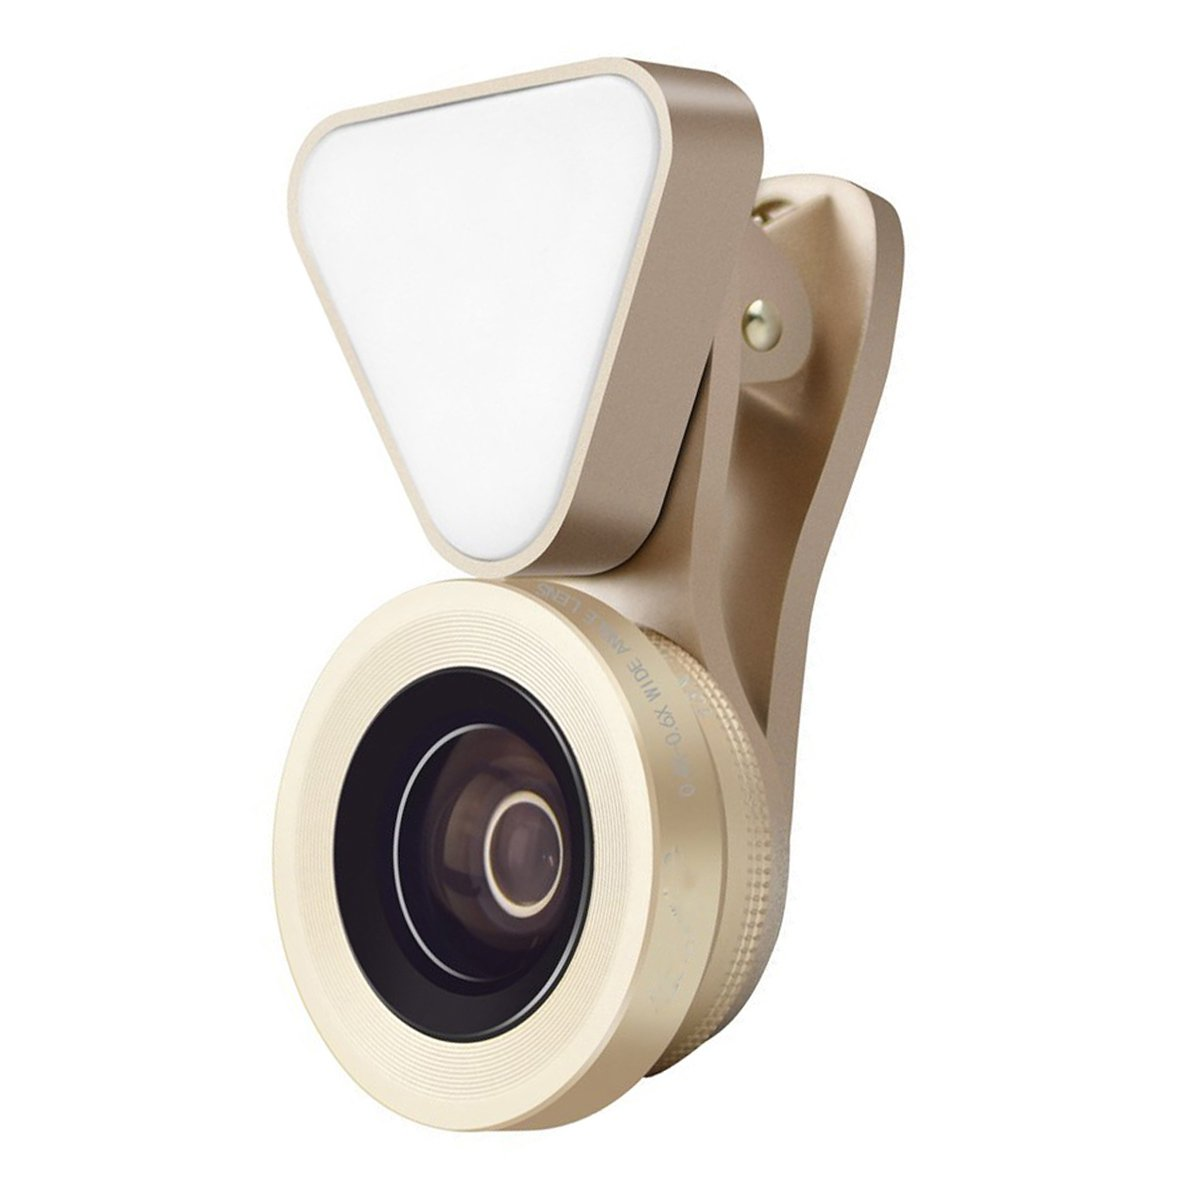 OLSUS Clip-On Fill Light Camera Lens - Golden